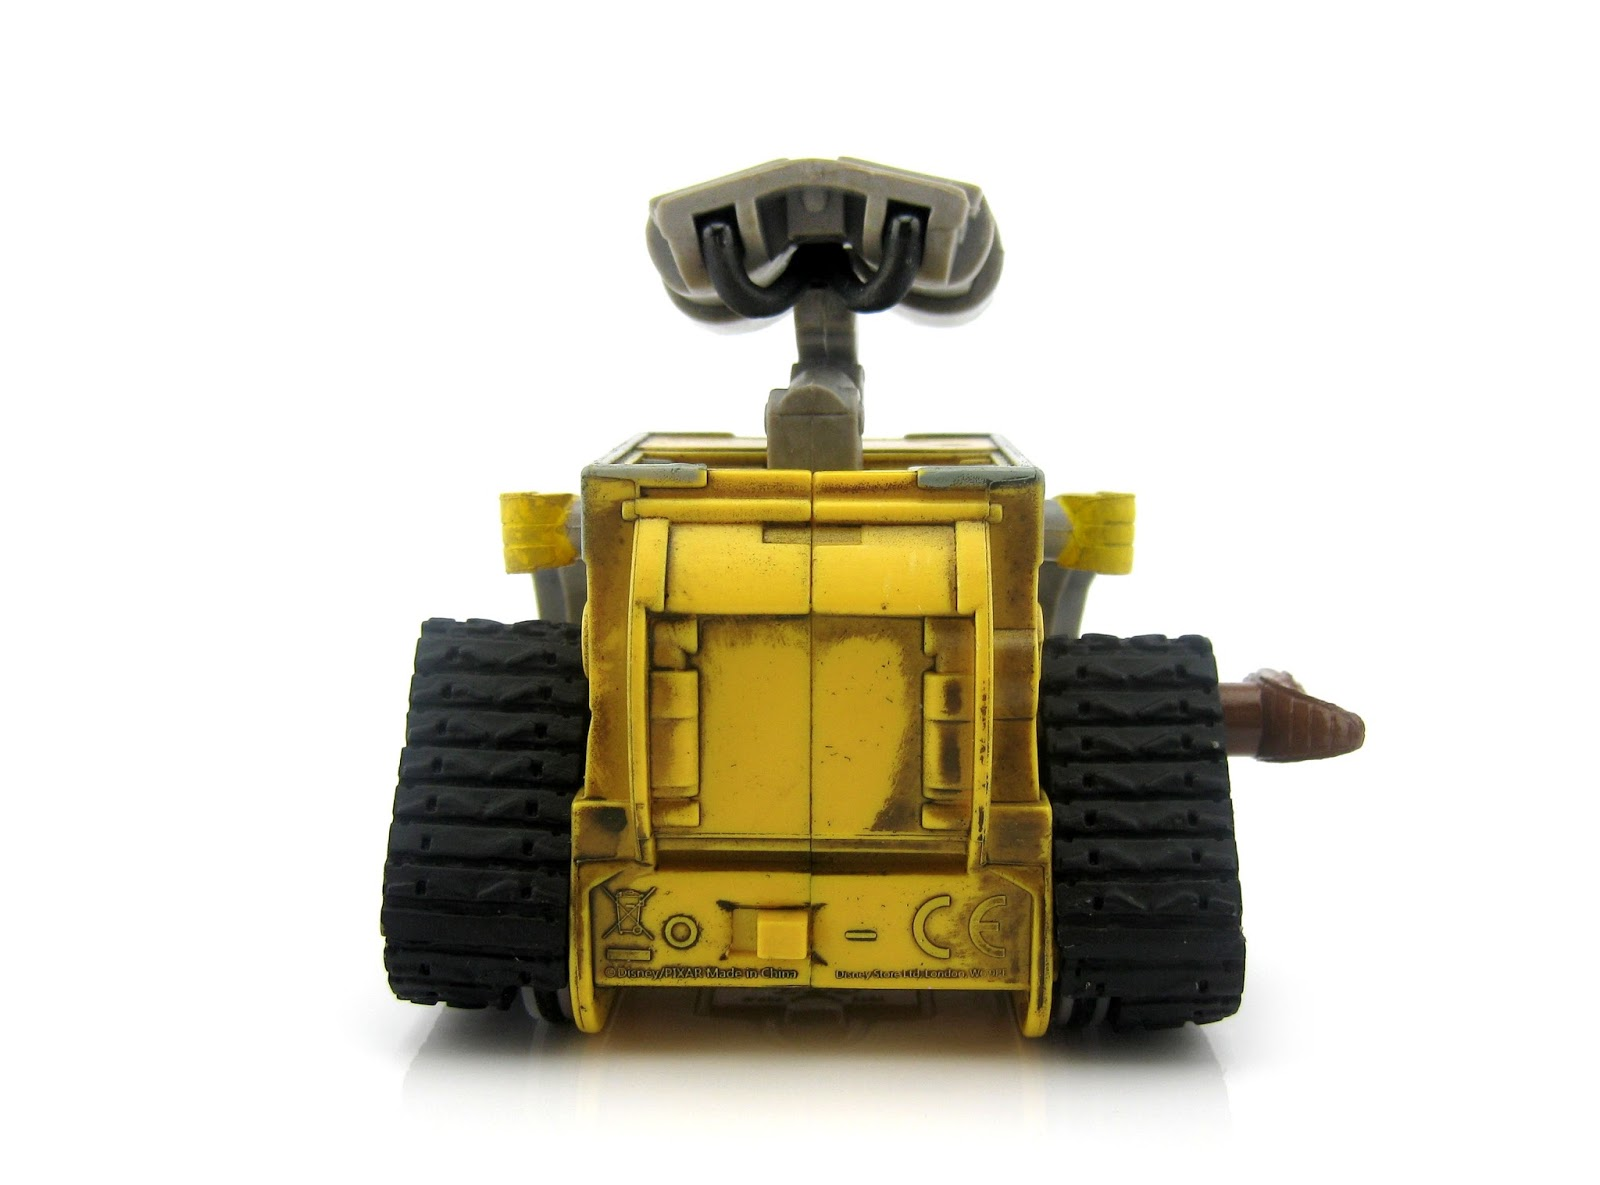 Wall E Toys : Dan the pixar fan wall·e wind up toy with sound effects